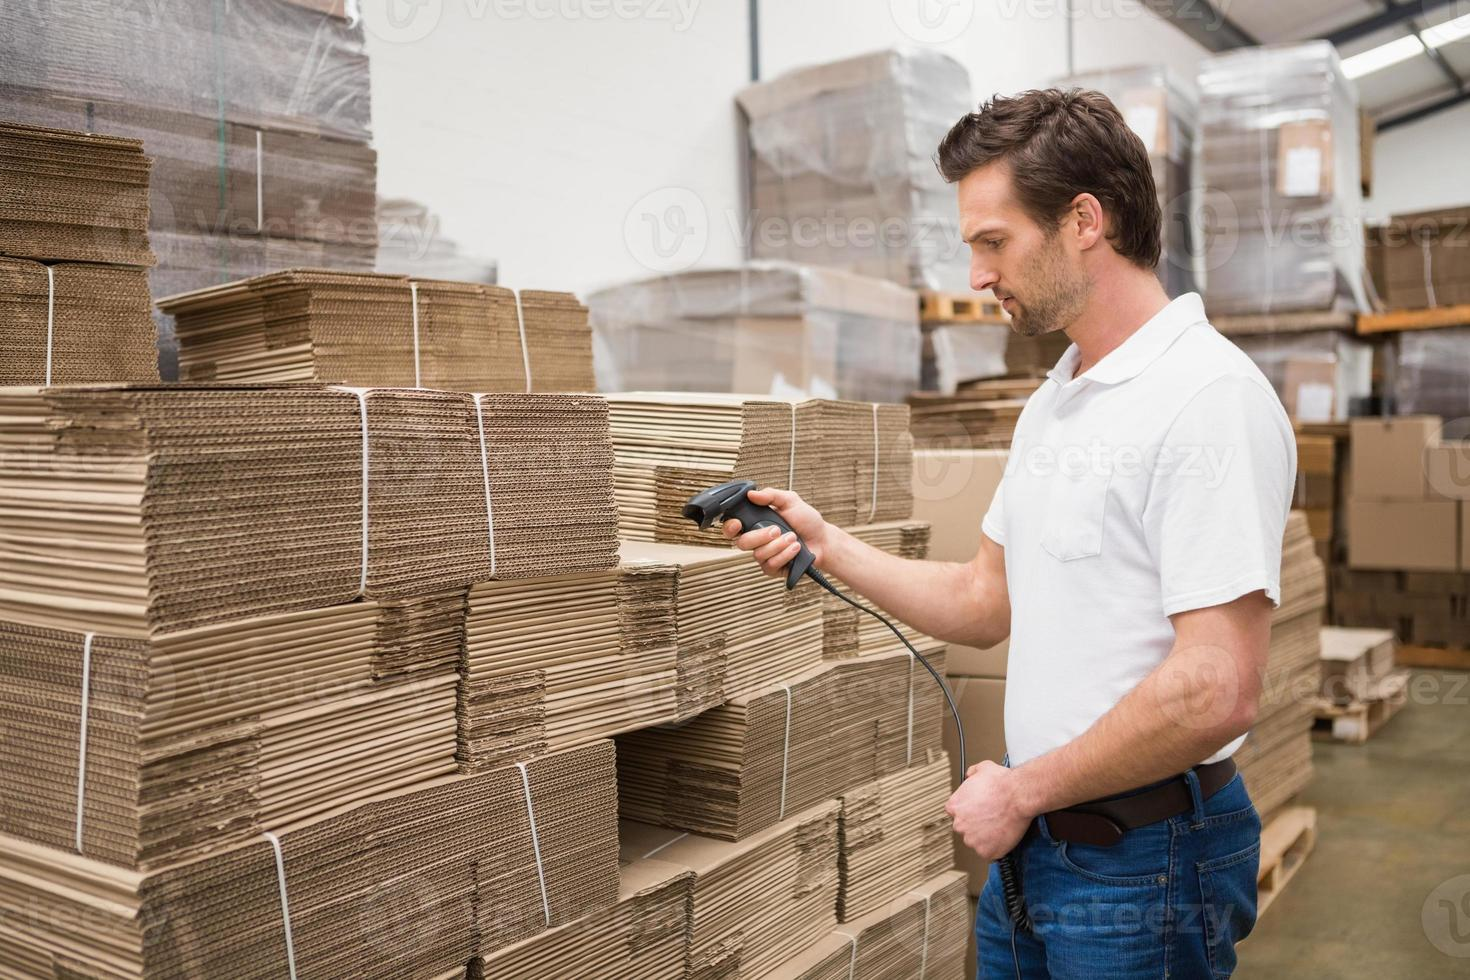 Serious warehouse worker holding scanner photo